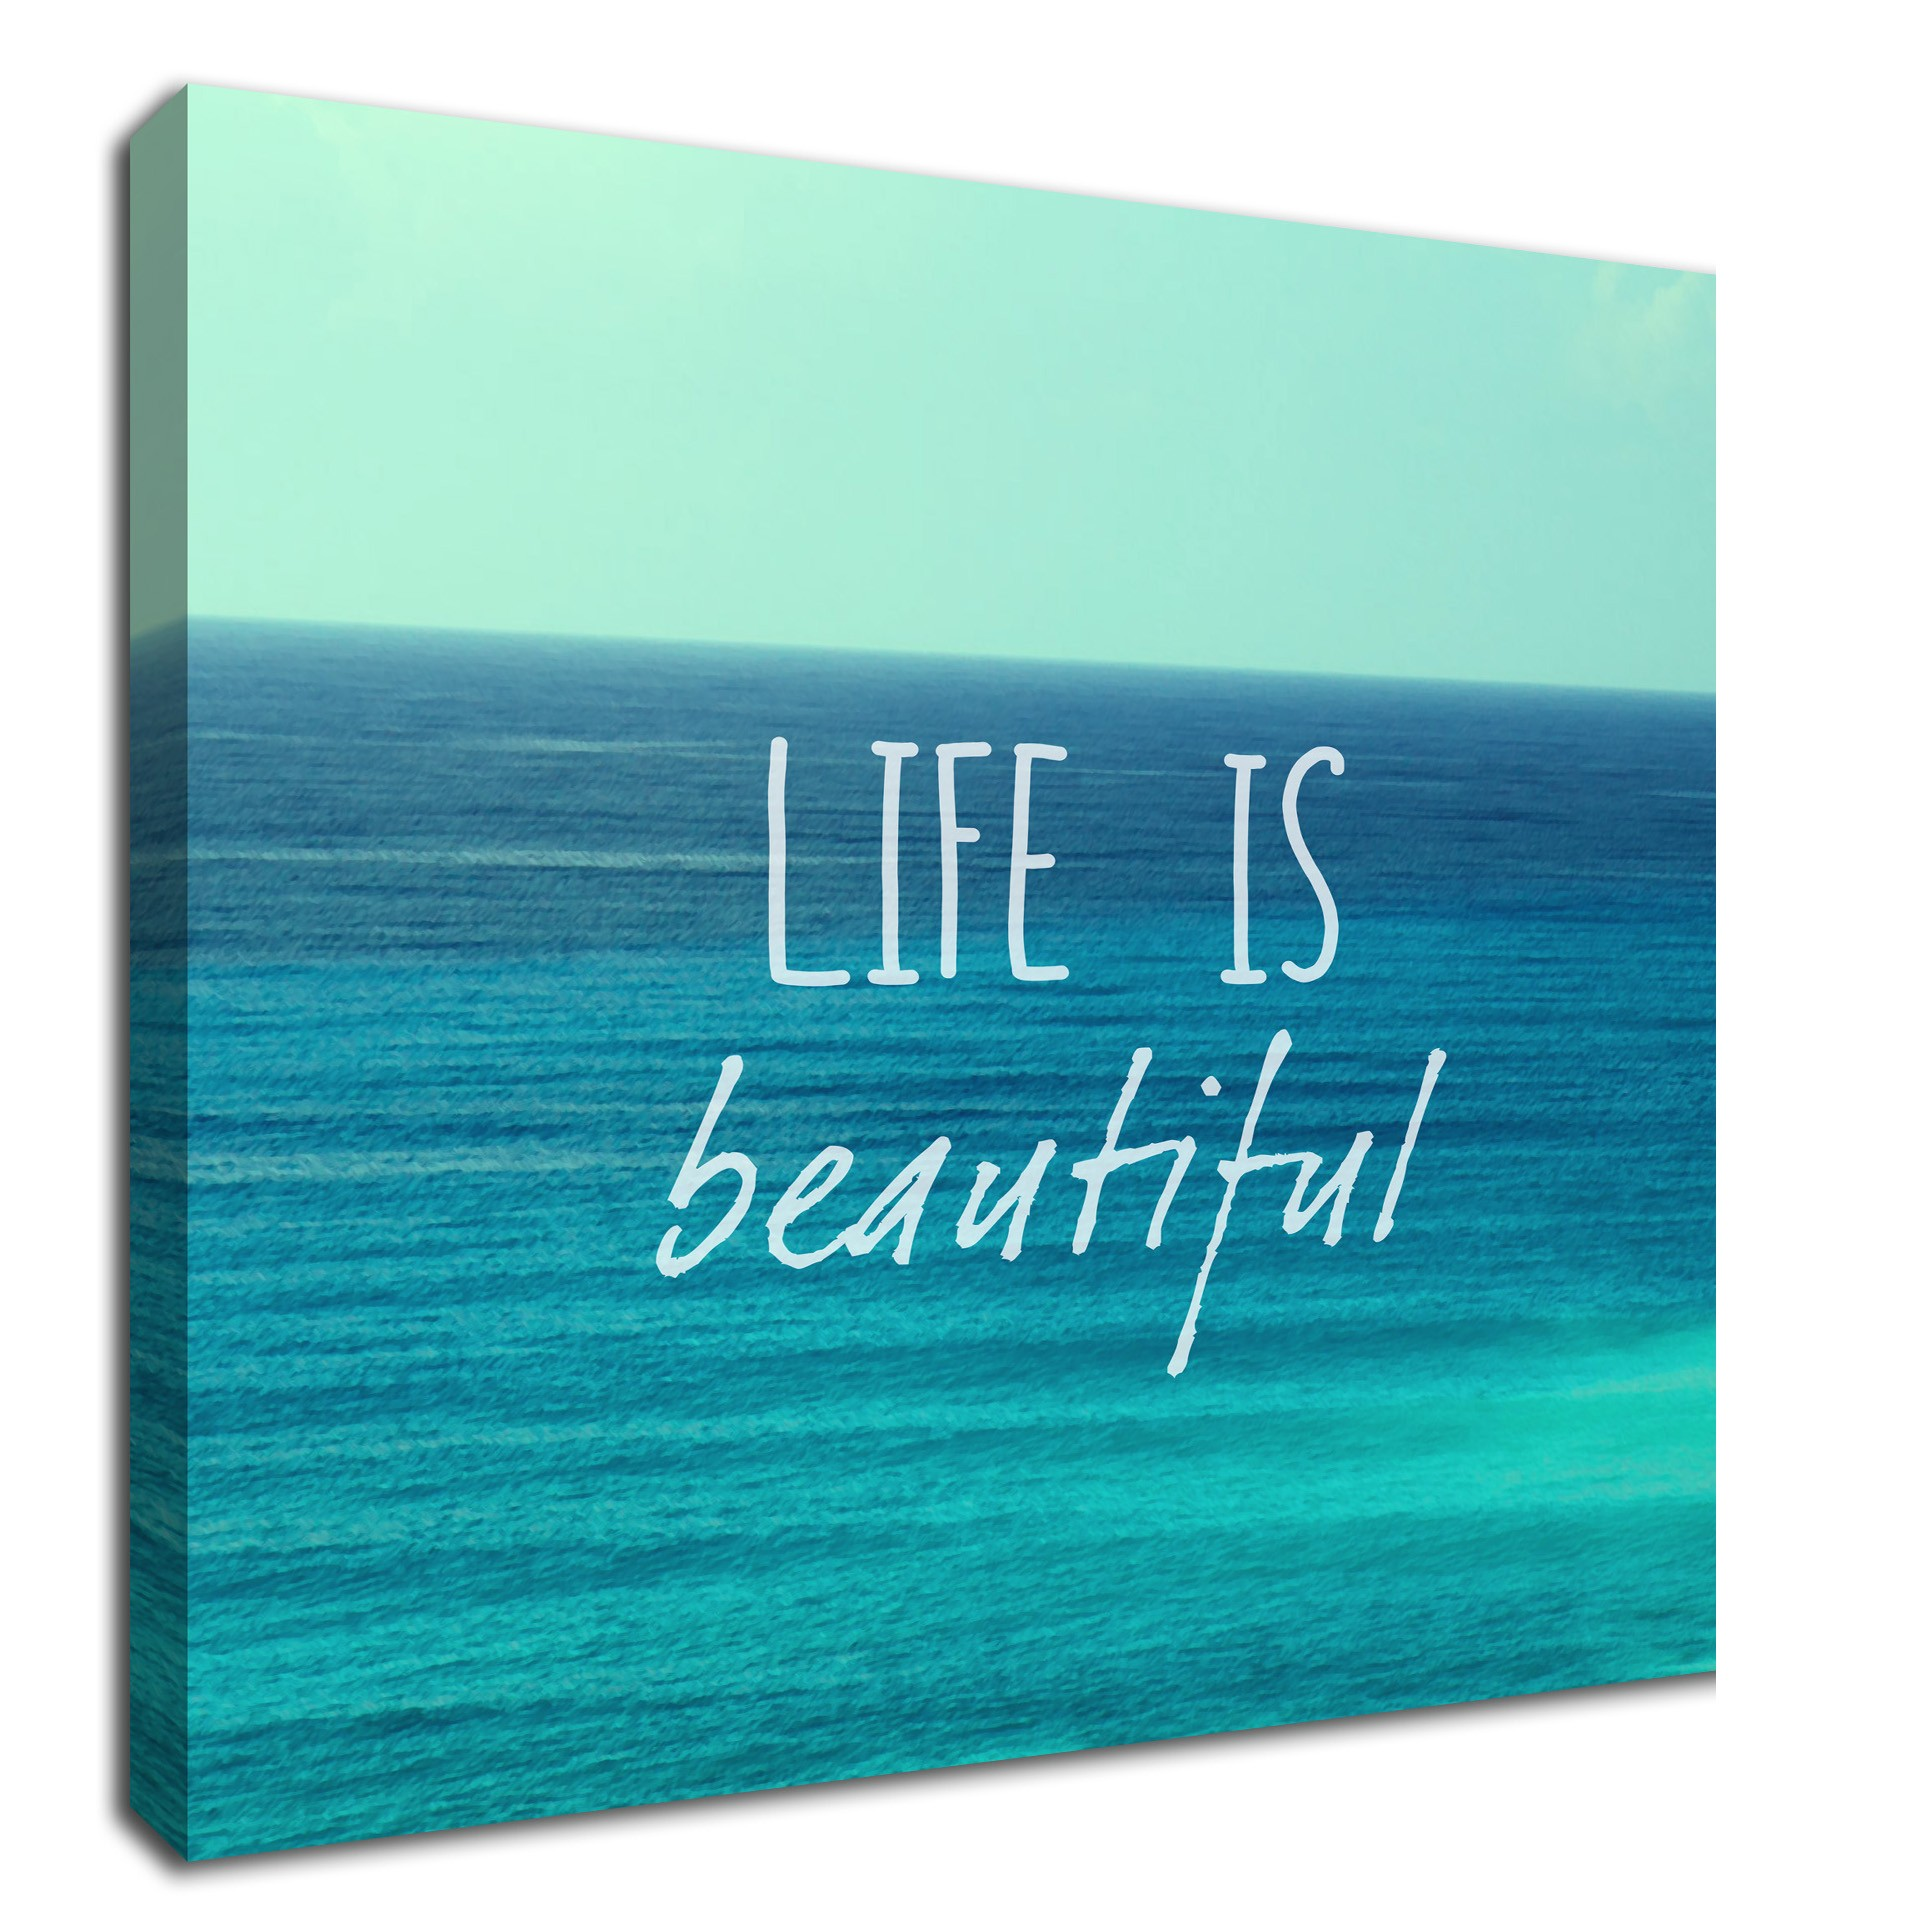 life is beautiful inspirational quote canvas art. Black Bedroom Furniture Sets. Home Design Ideas